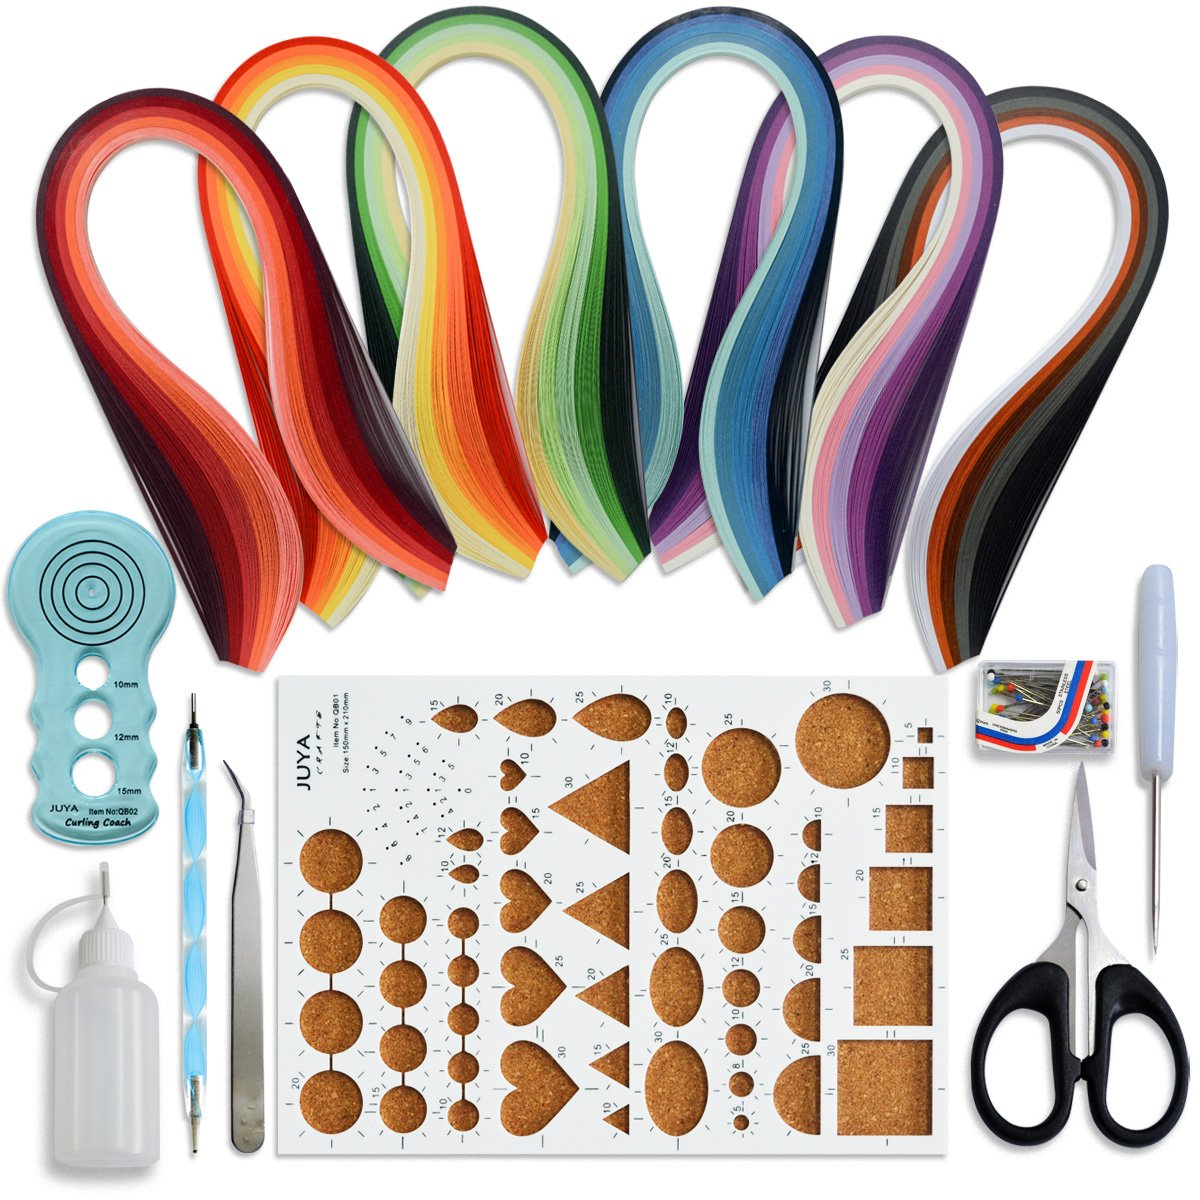 JUYA Paper Quilling Kits with 30 Colors 600 Strips and 8 Tools (Paper Width:7mm, Blue Tools) by JUYA